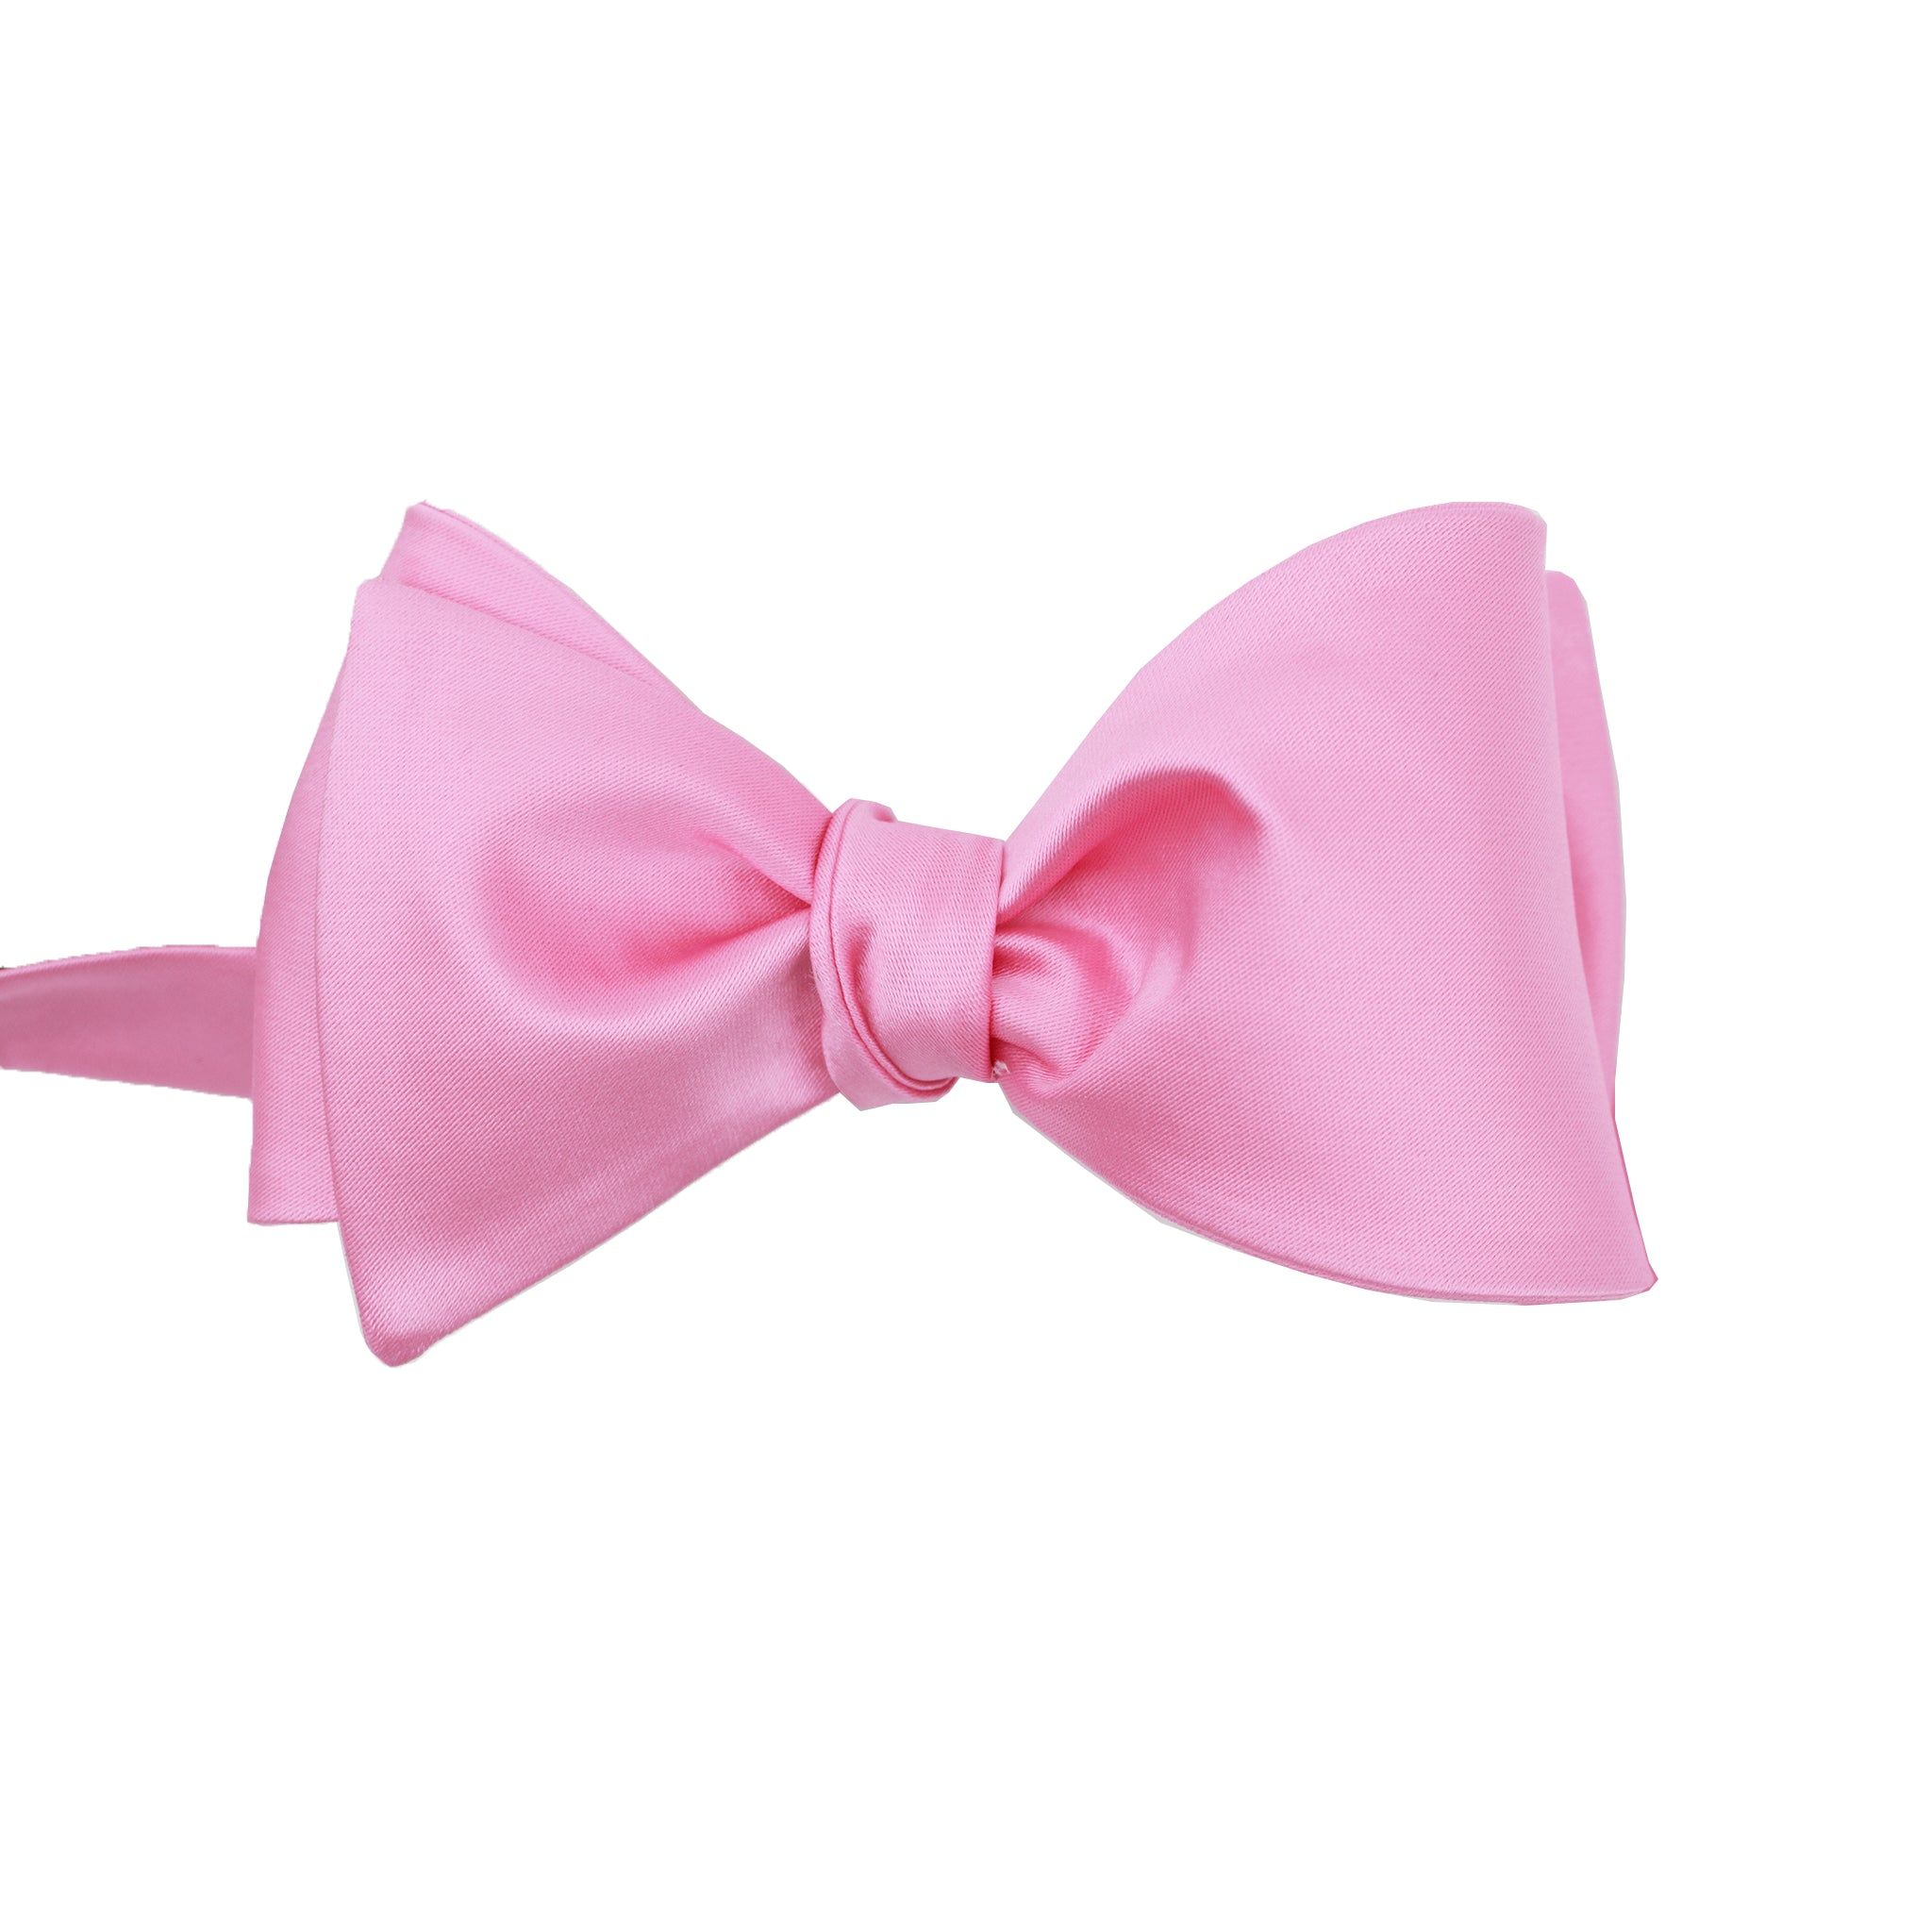 Pink Satin Self Tie Bow Tie